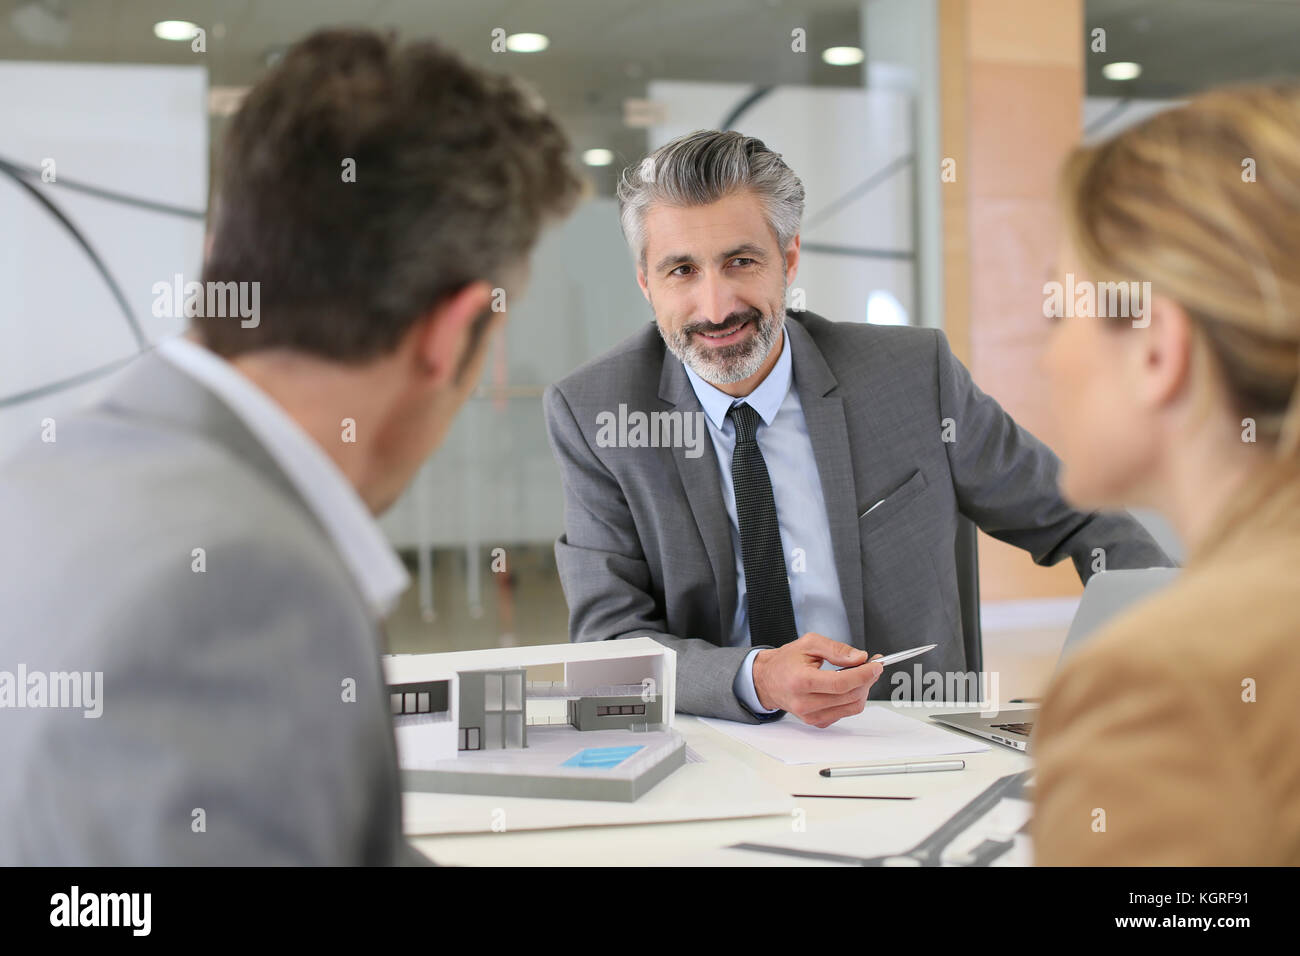 Architect meeting with clients in office Stock Photo